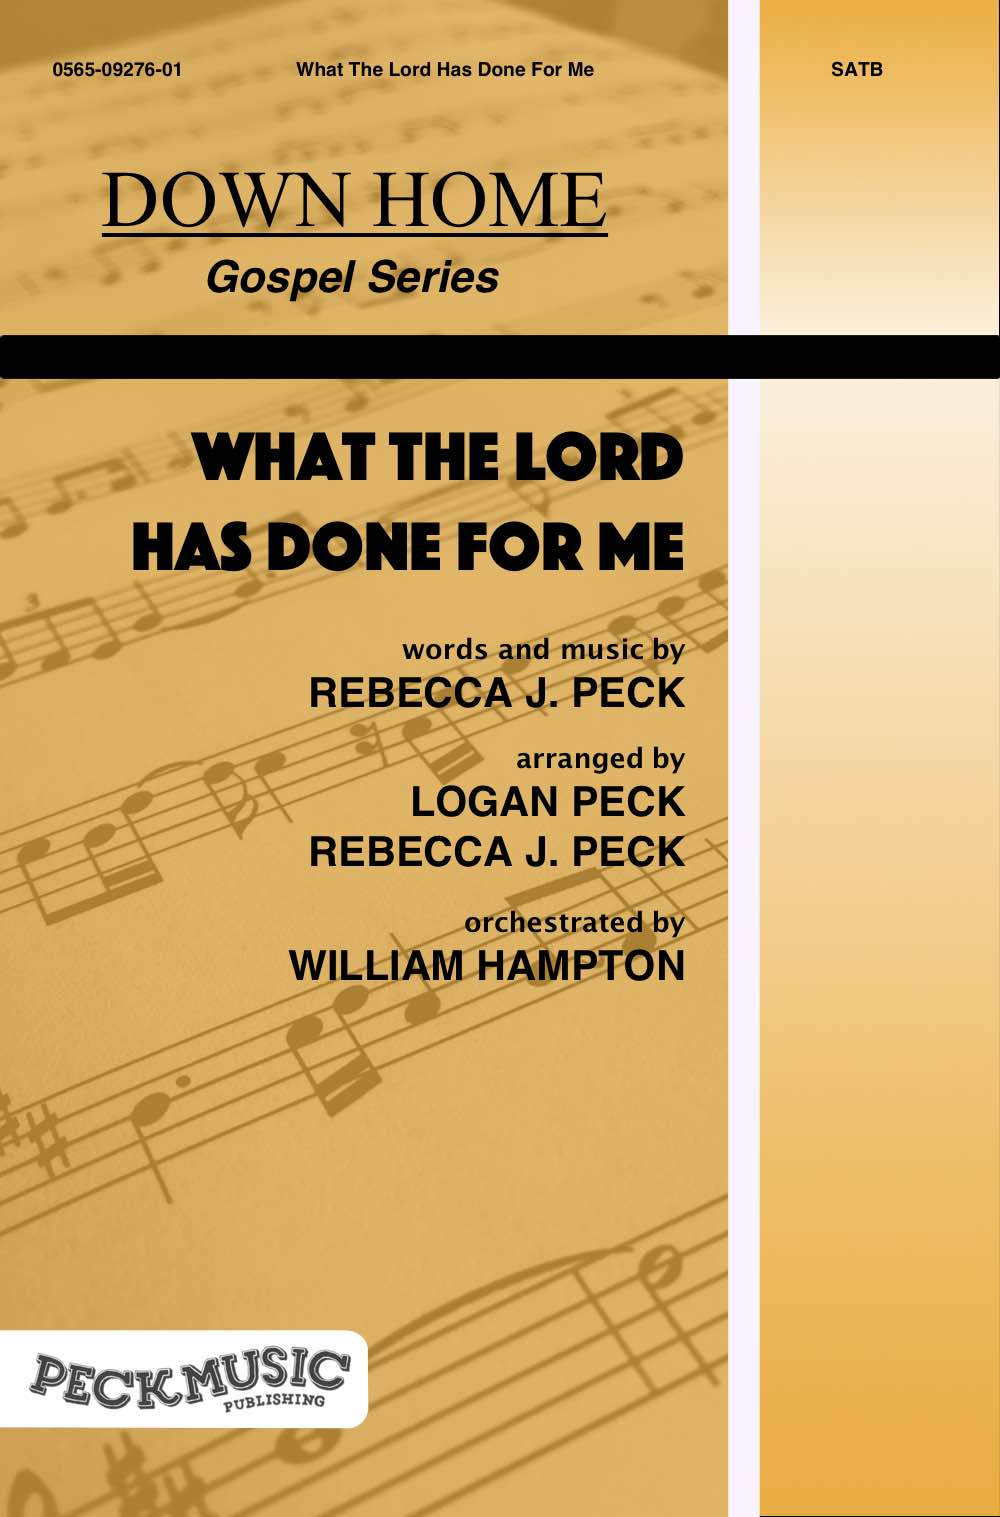 What The Lord Has Done For Me | Peck Music Publishing